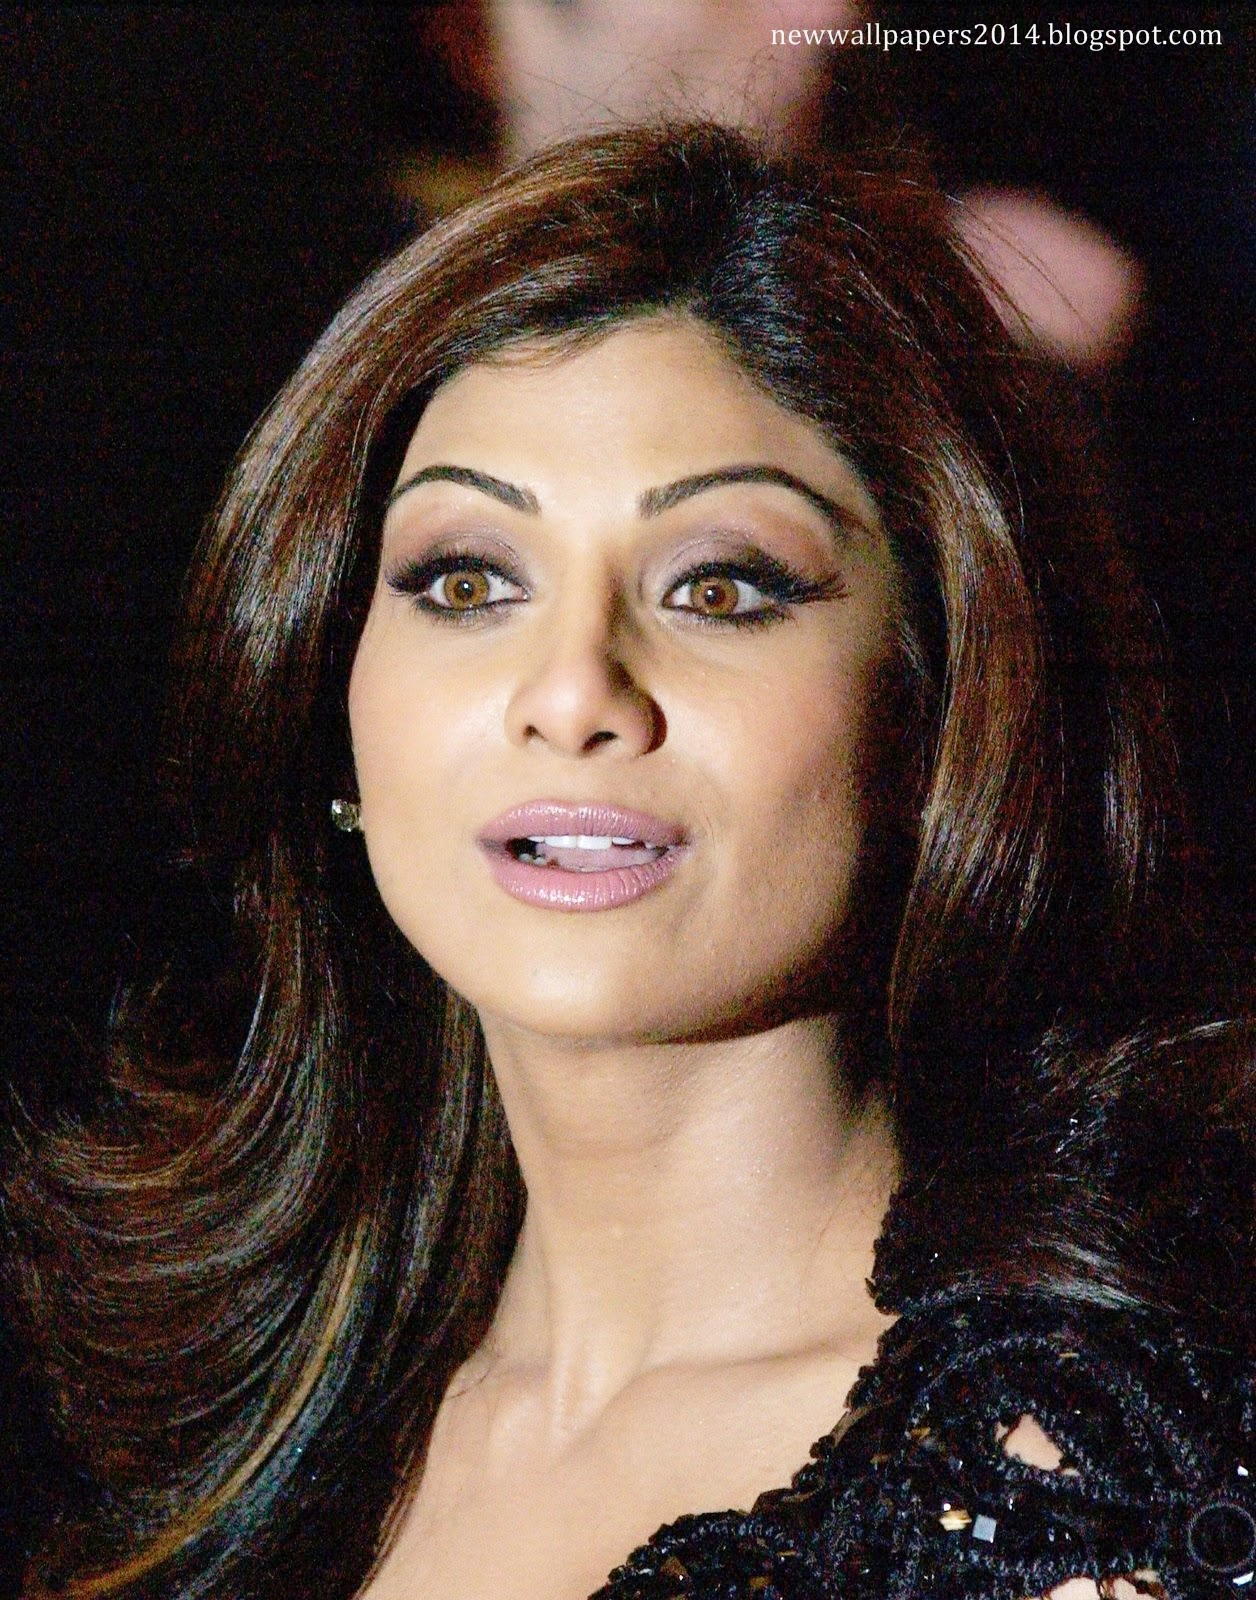 Shilpa Shetty Wallpapers - Shilpa Shetty Hd Wallpapers -8669